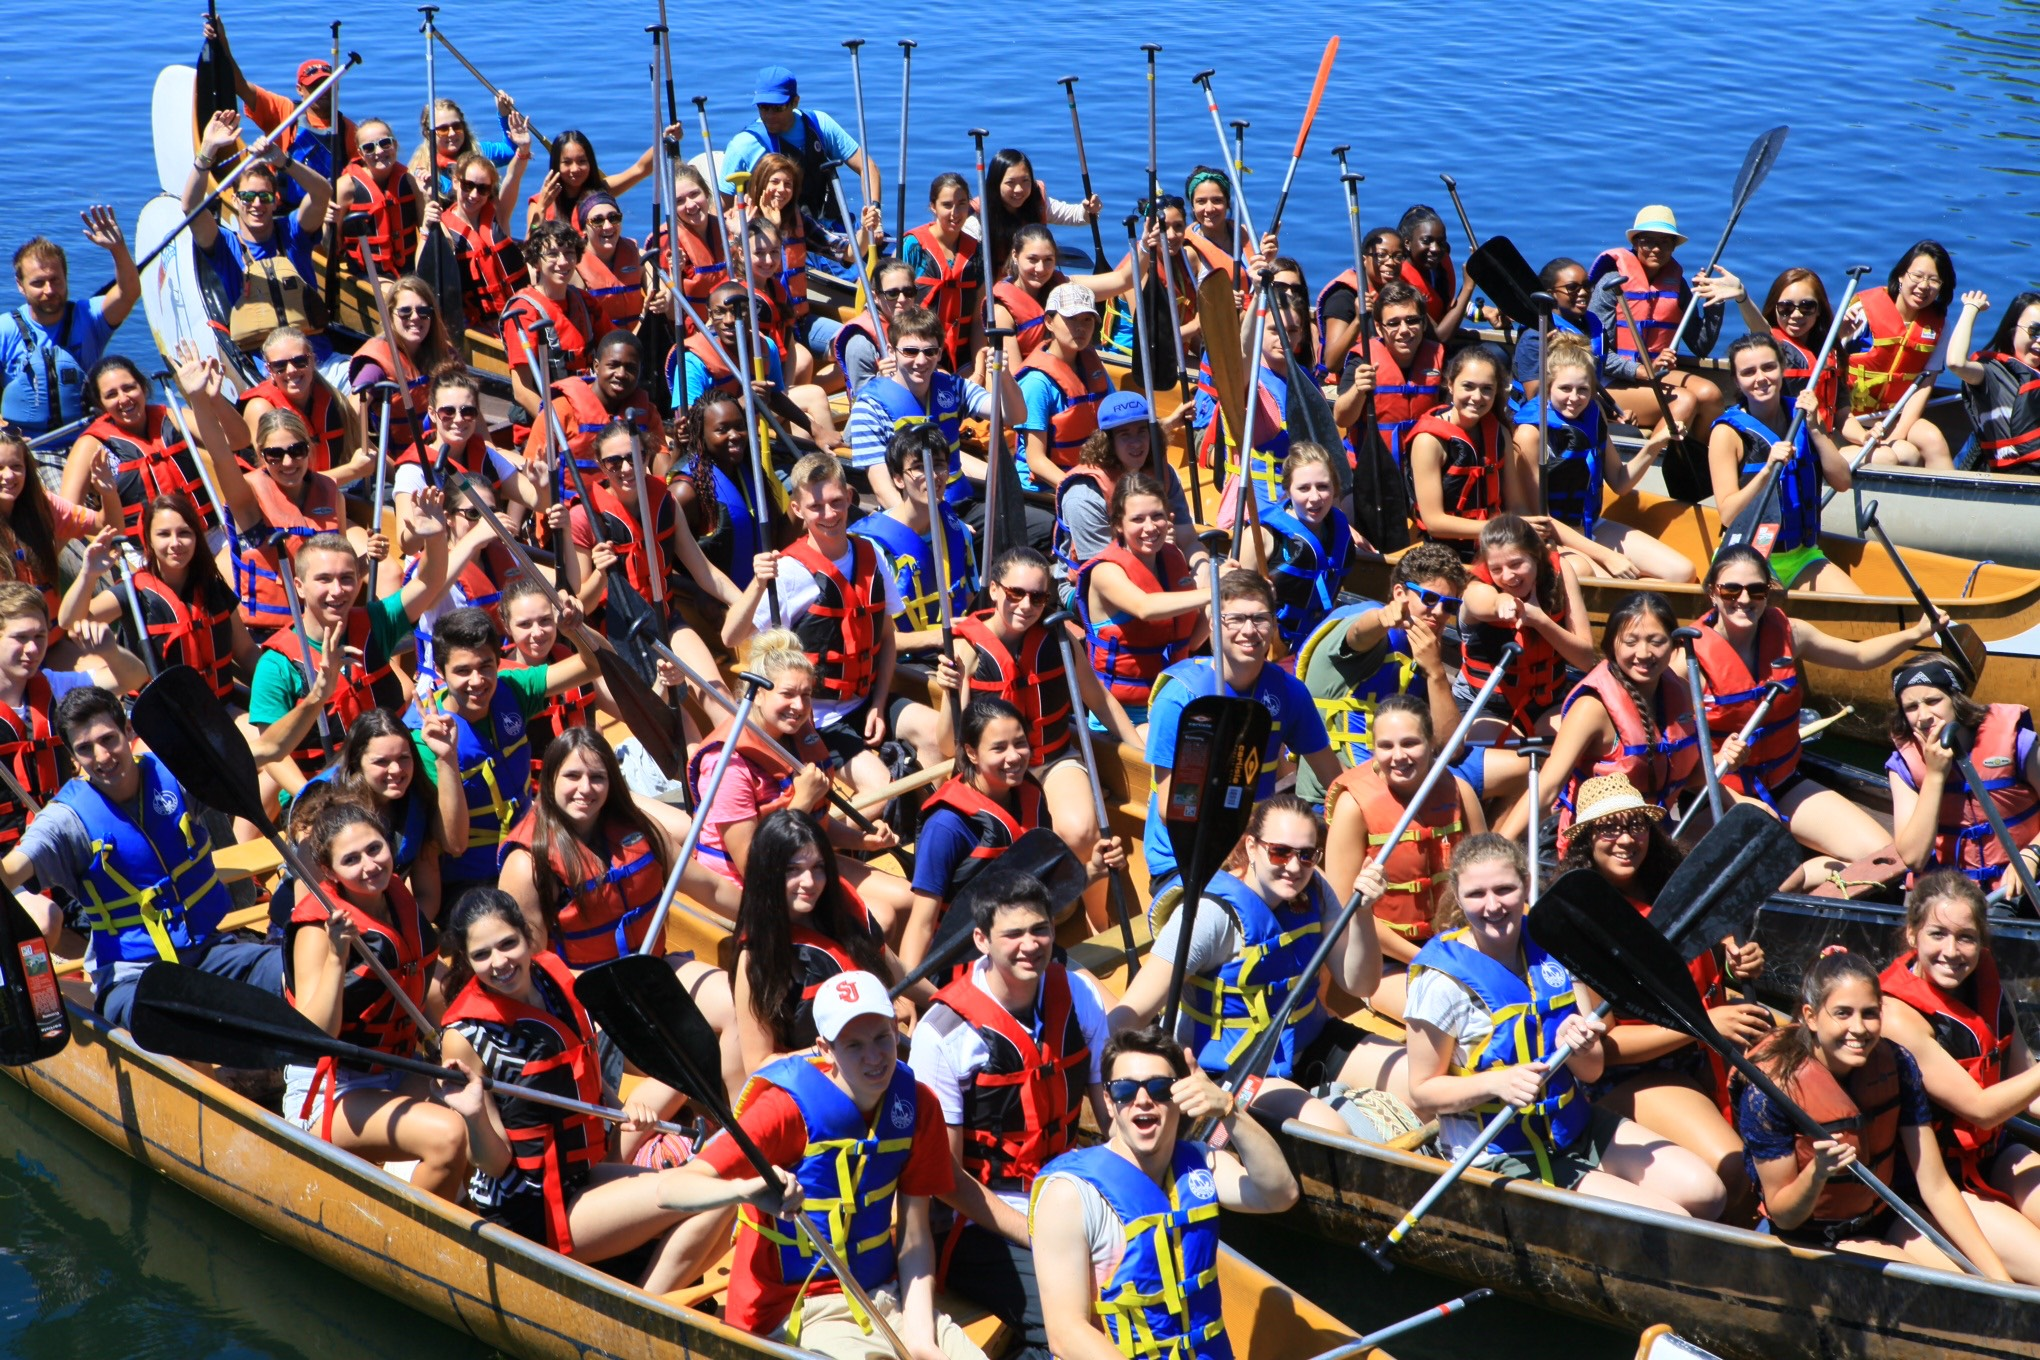 canoe race and team building events on toronto islands